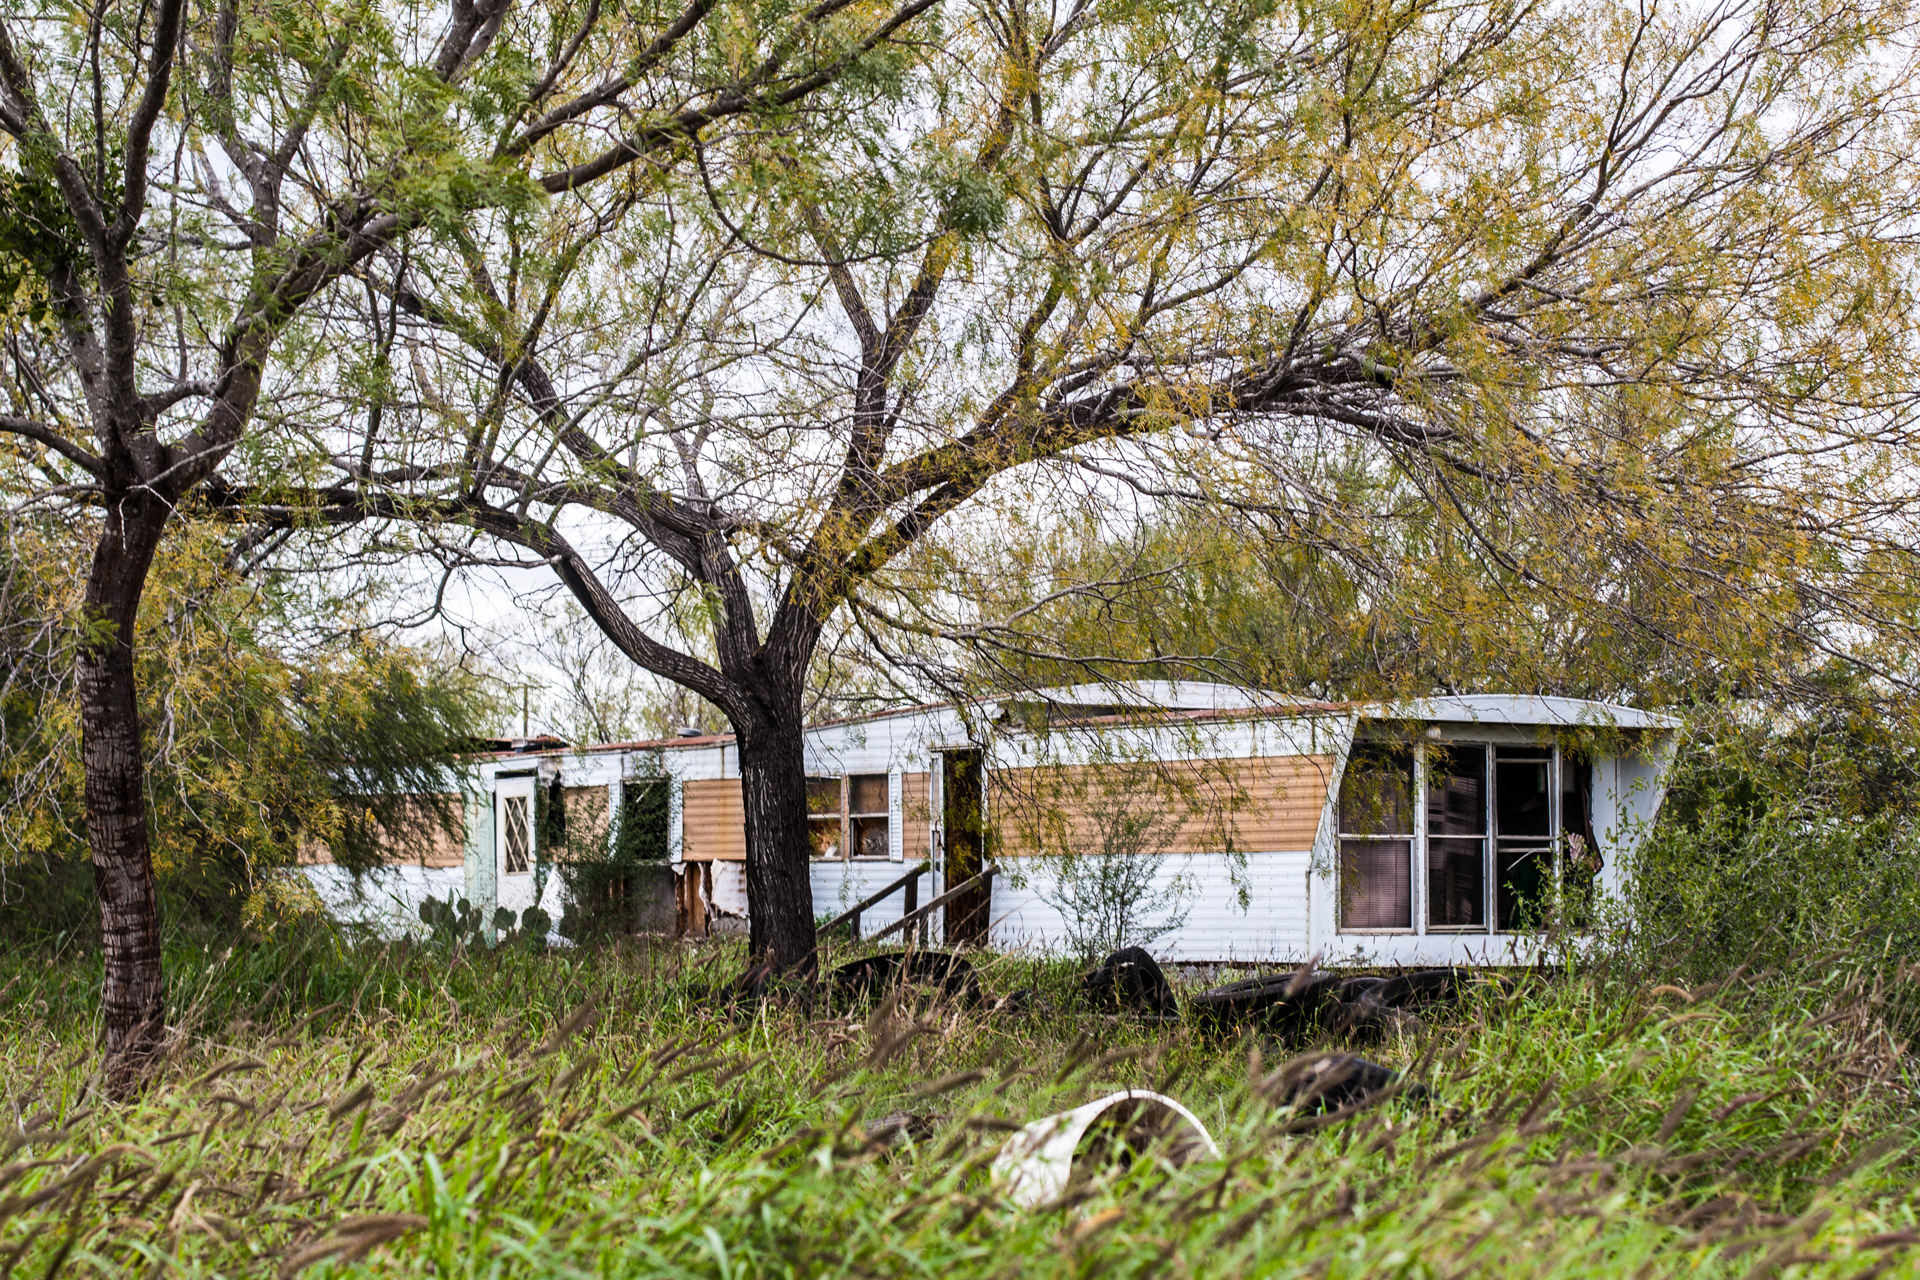 Pearsall, Texas - A Ruin, A Trailer, And Some Tires (trailer mid)